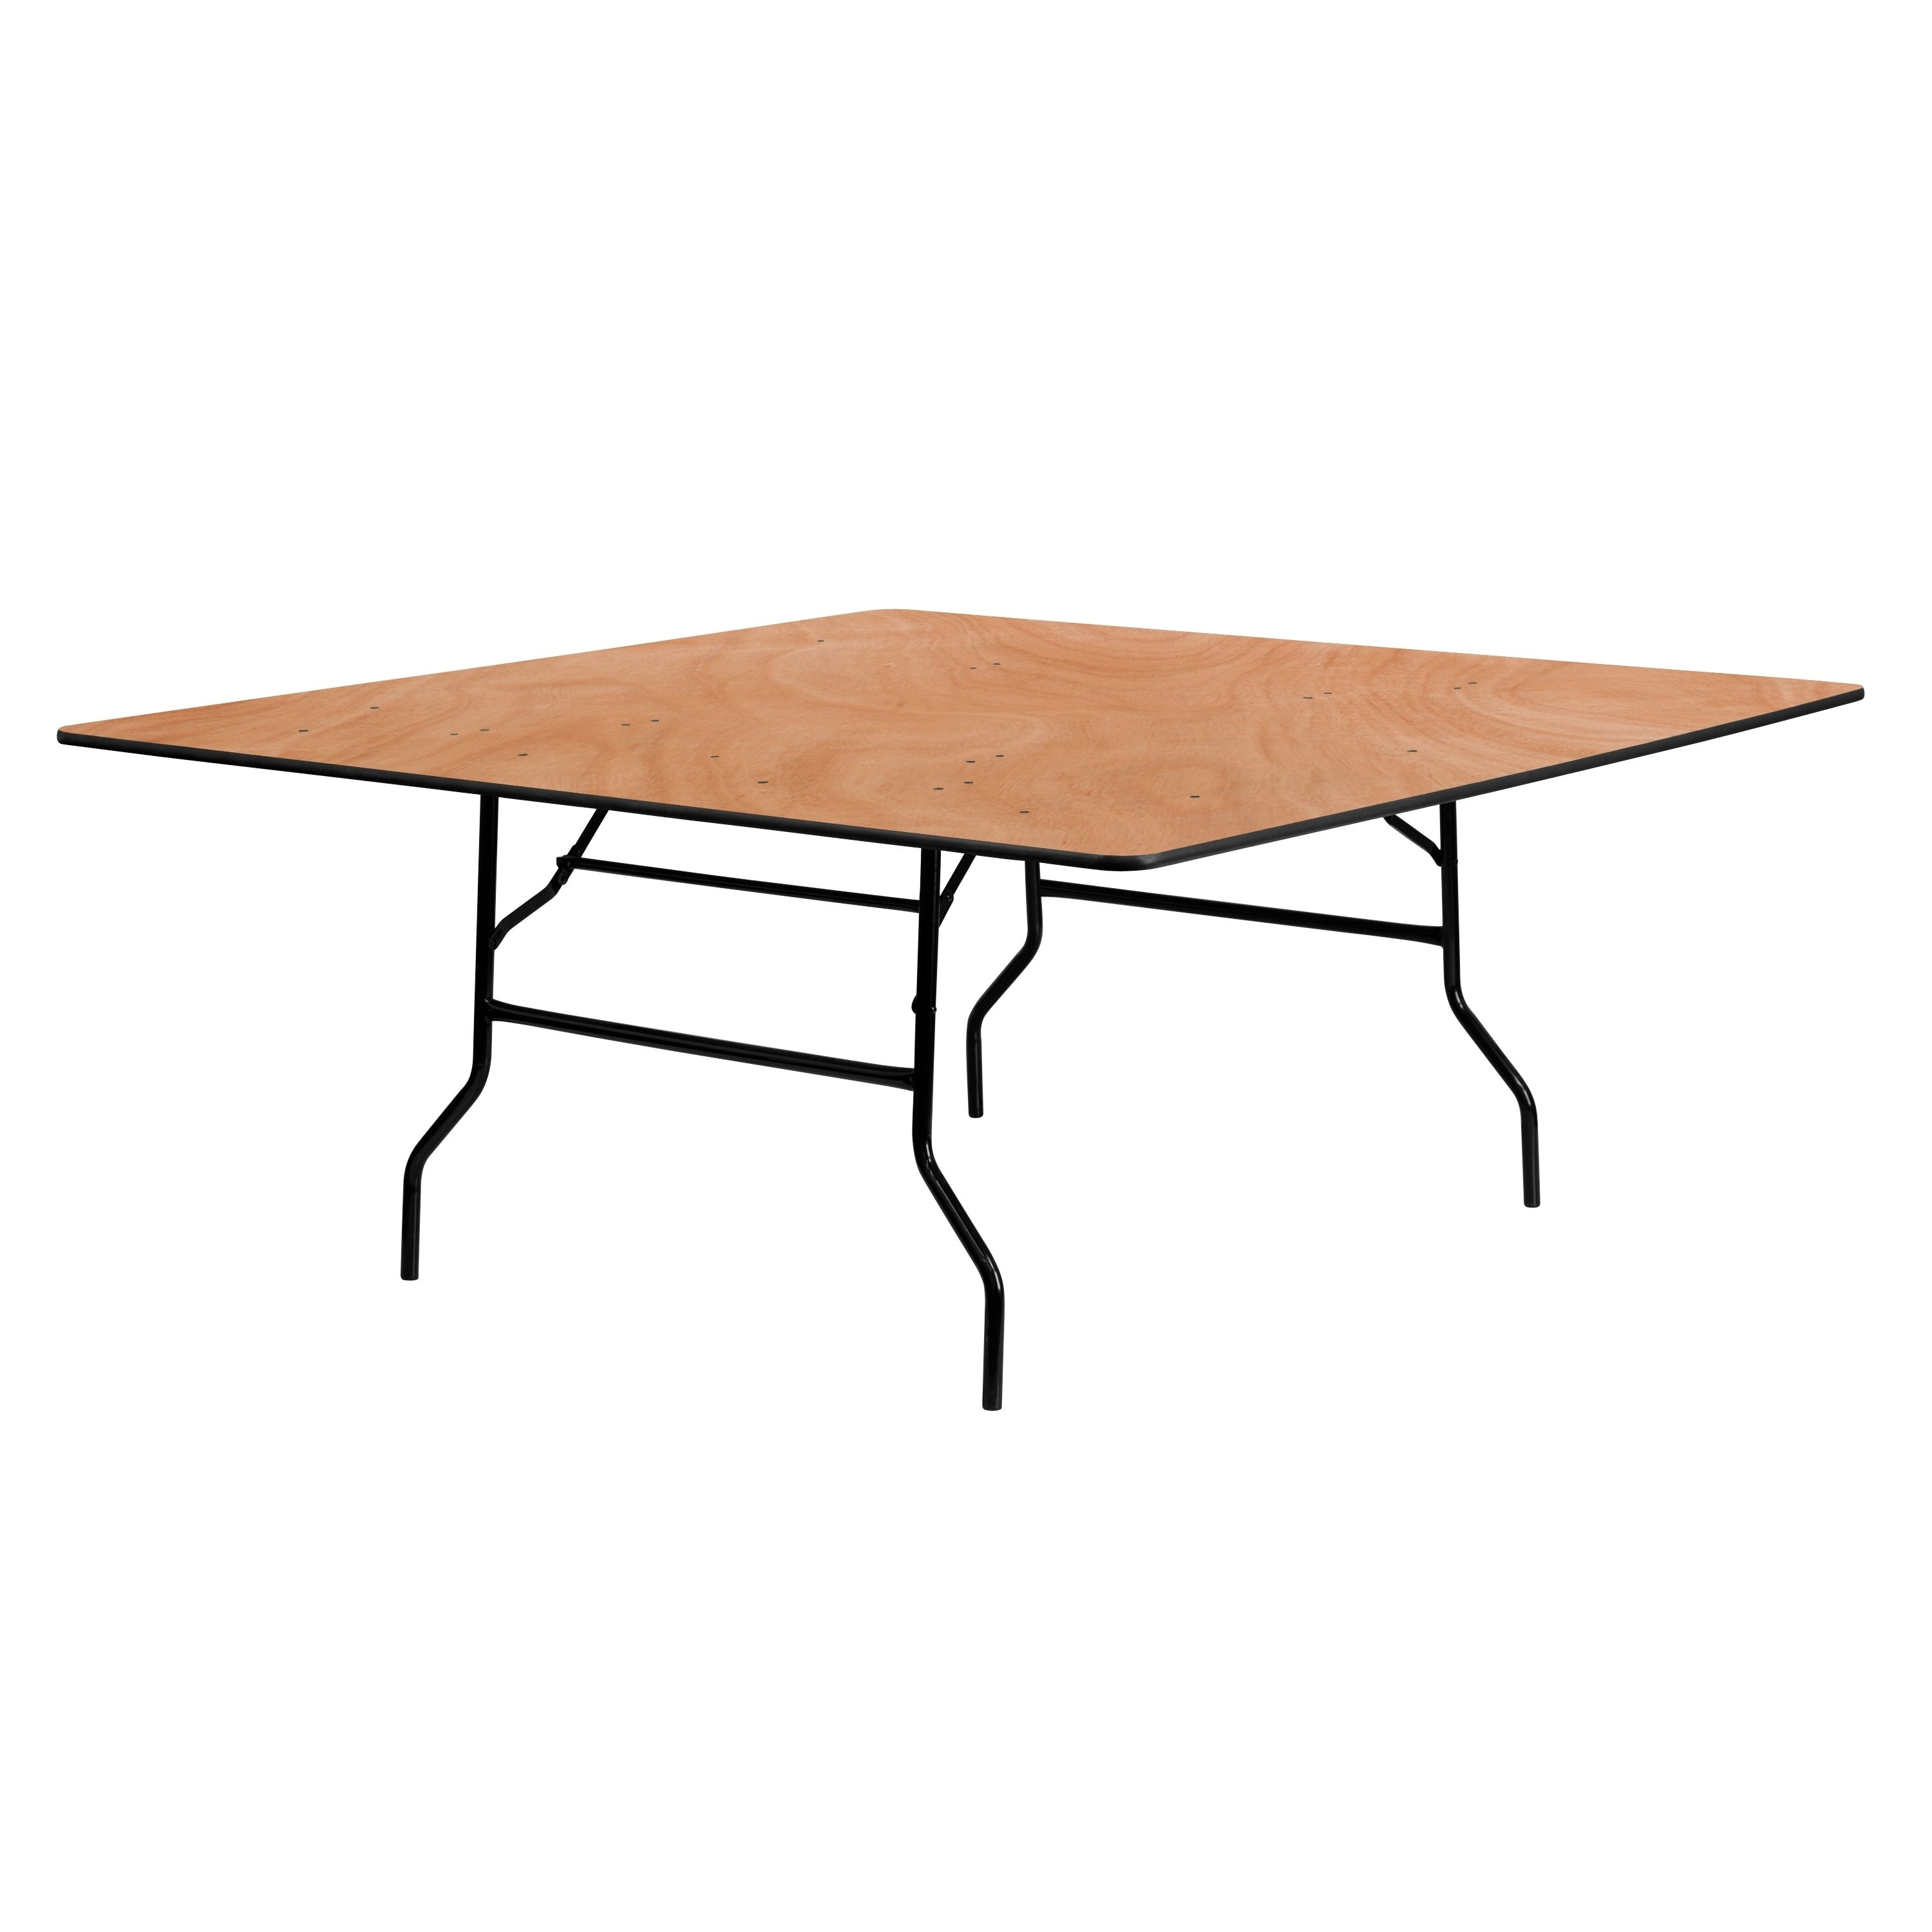 FLASH Furniture 72-inch Square Wood Folding Banquet Table...